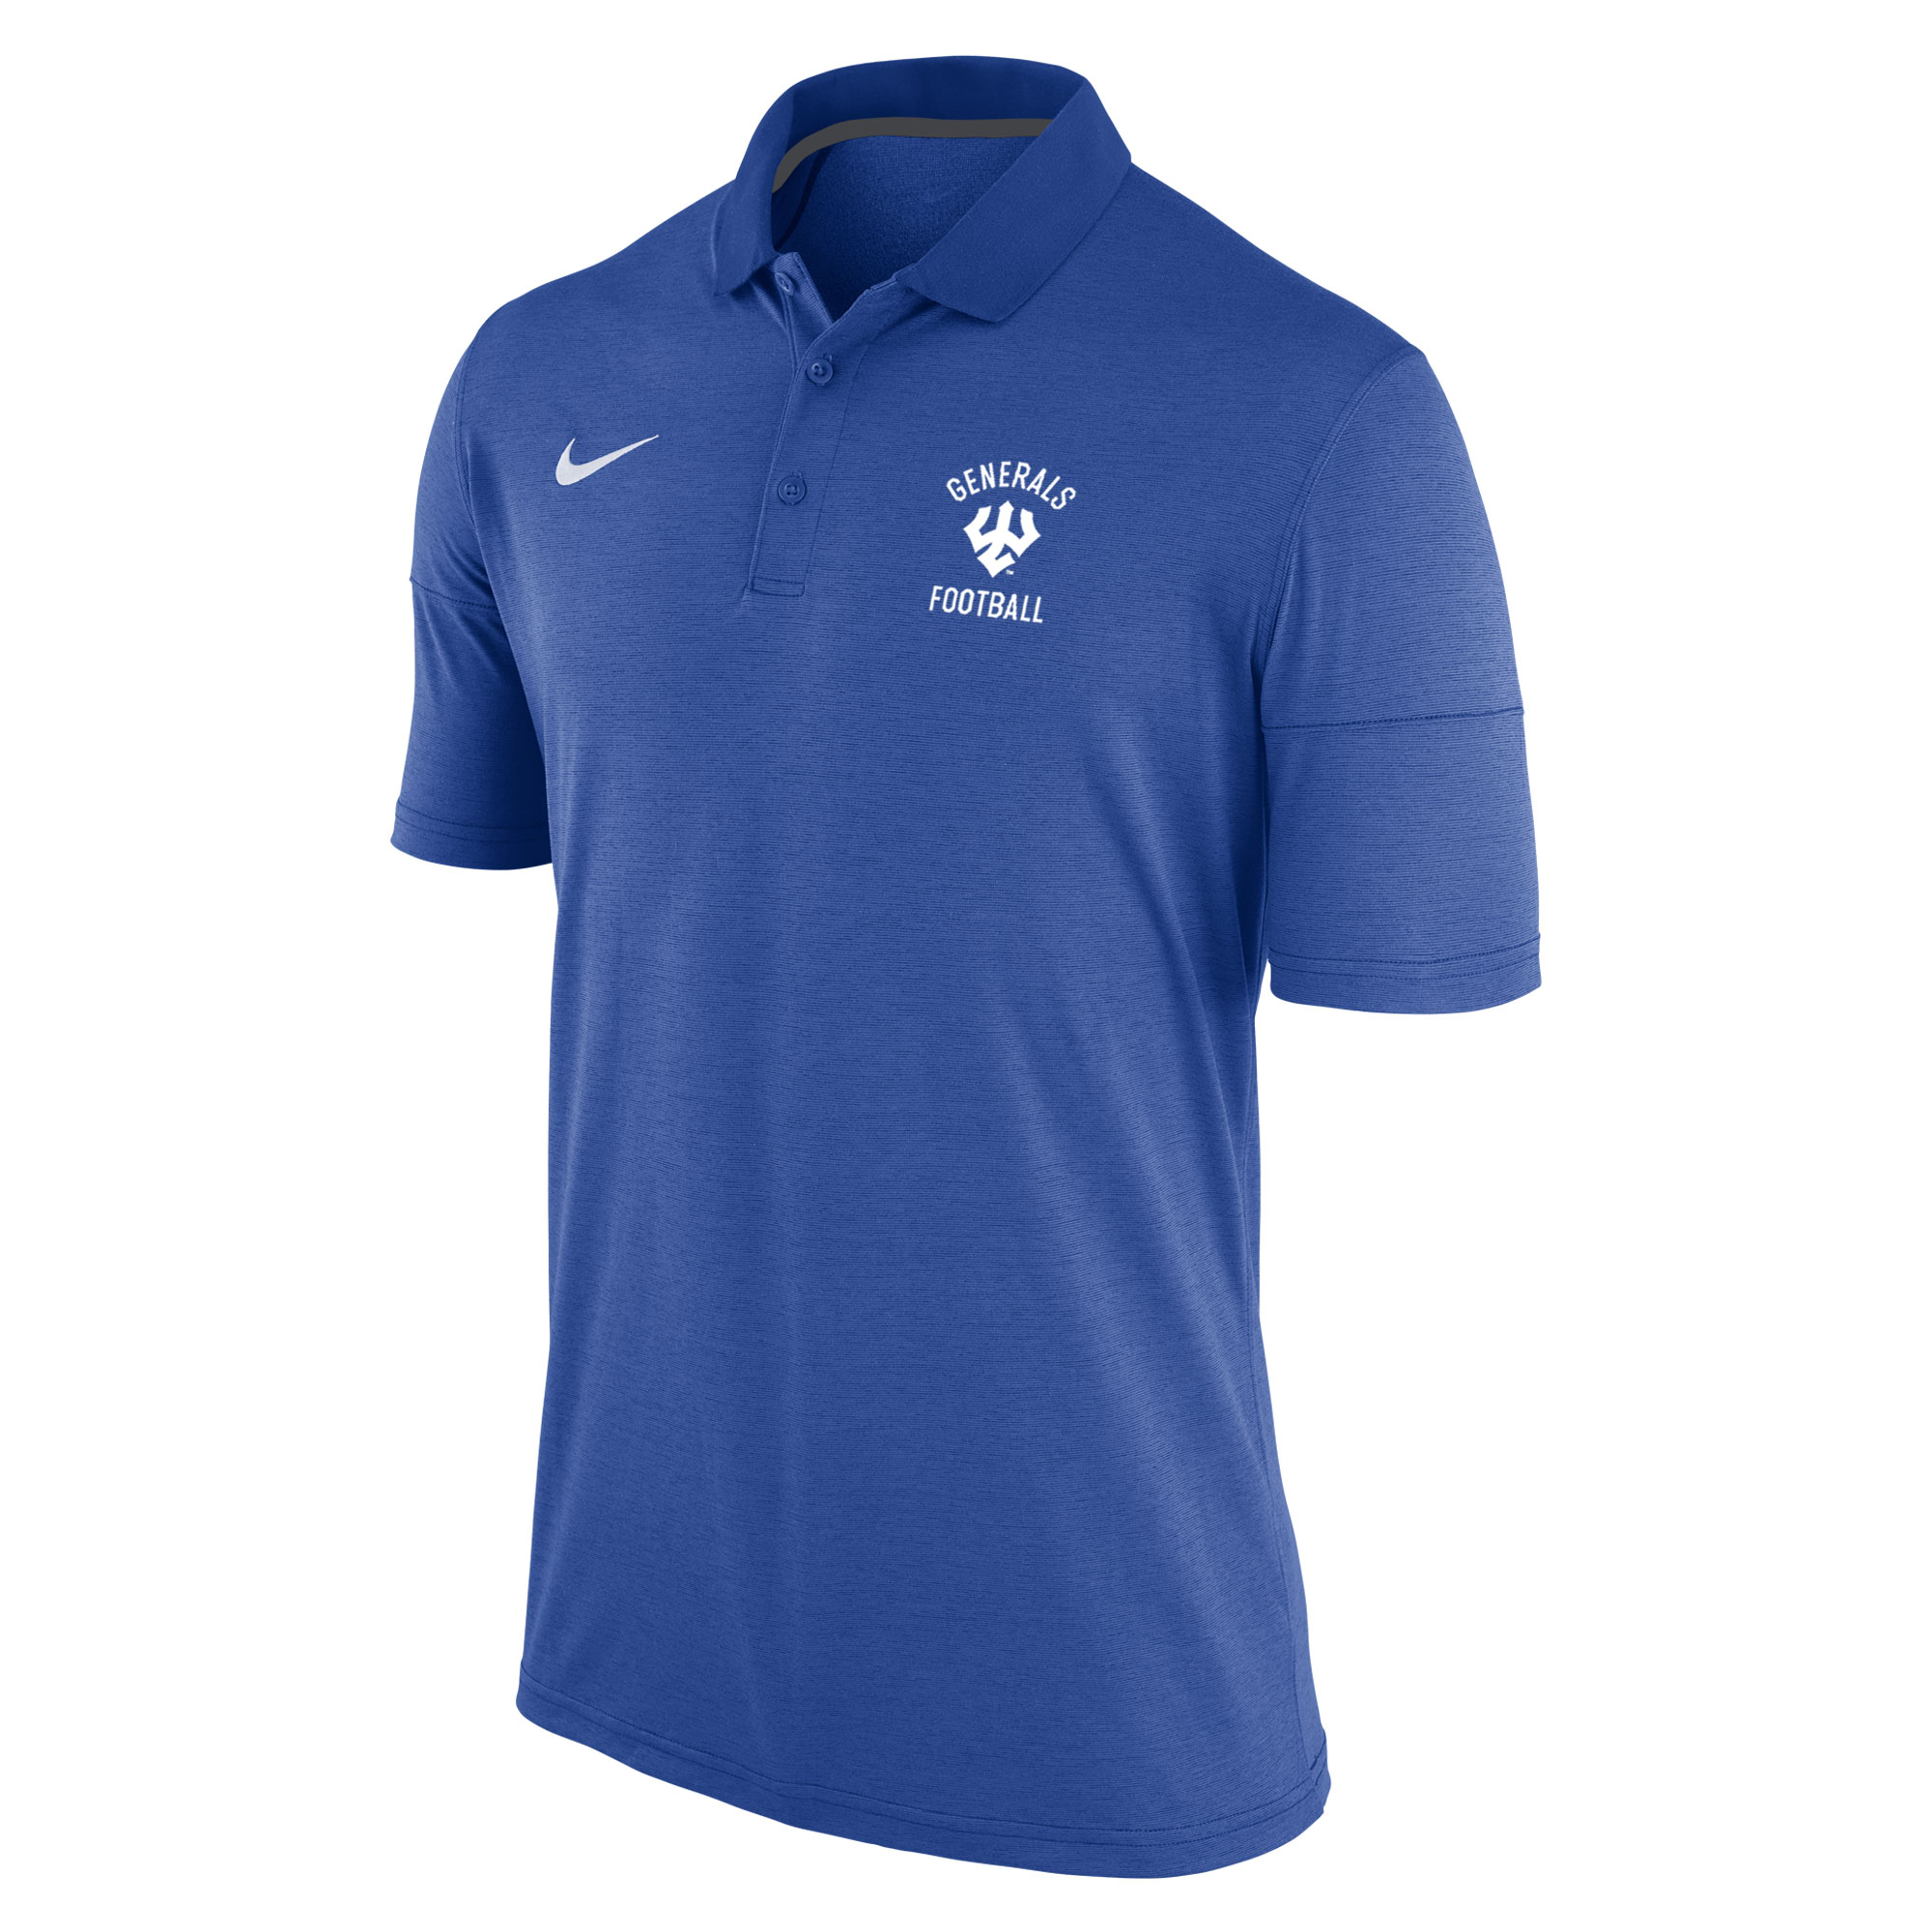 Nike Football Varsity Polo, Royal